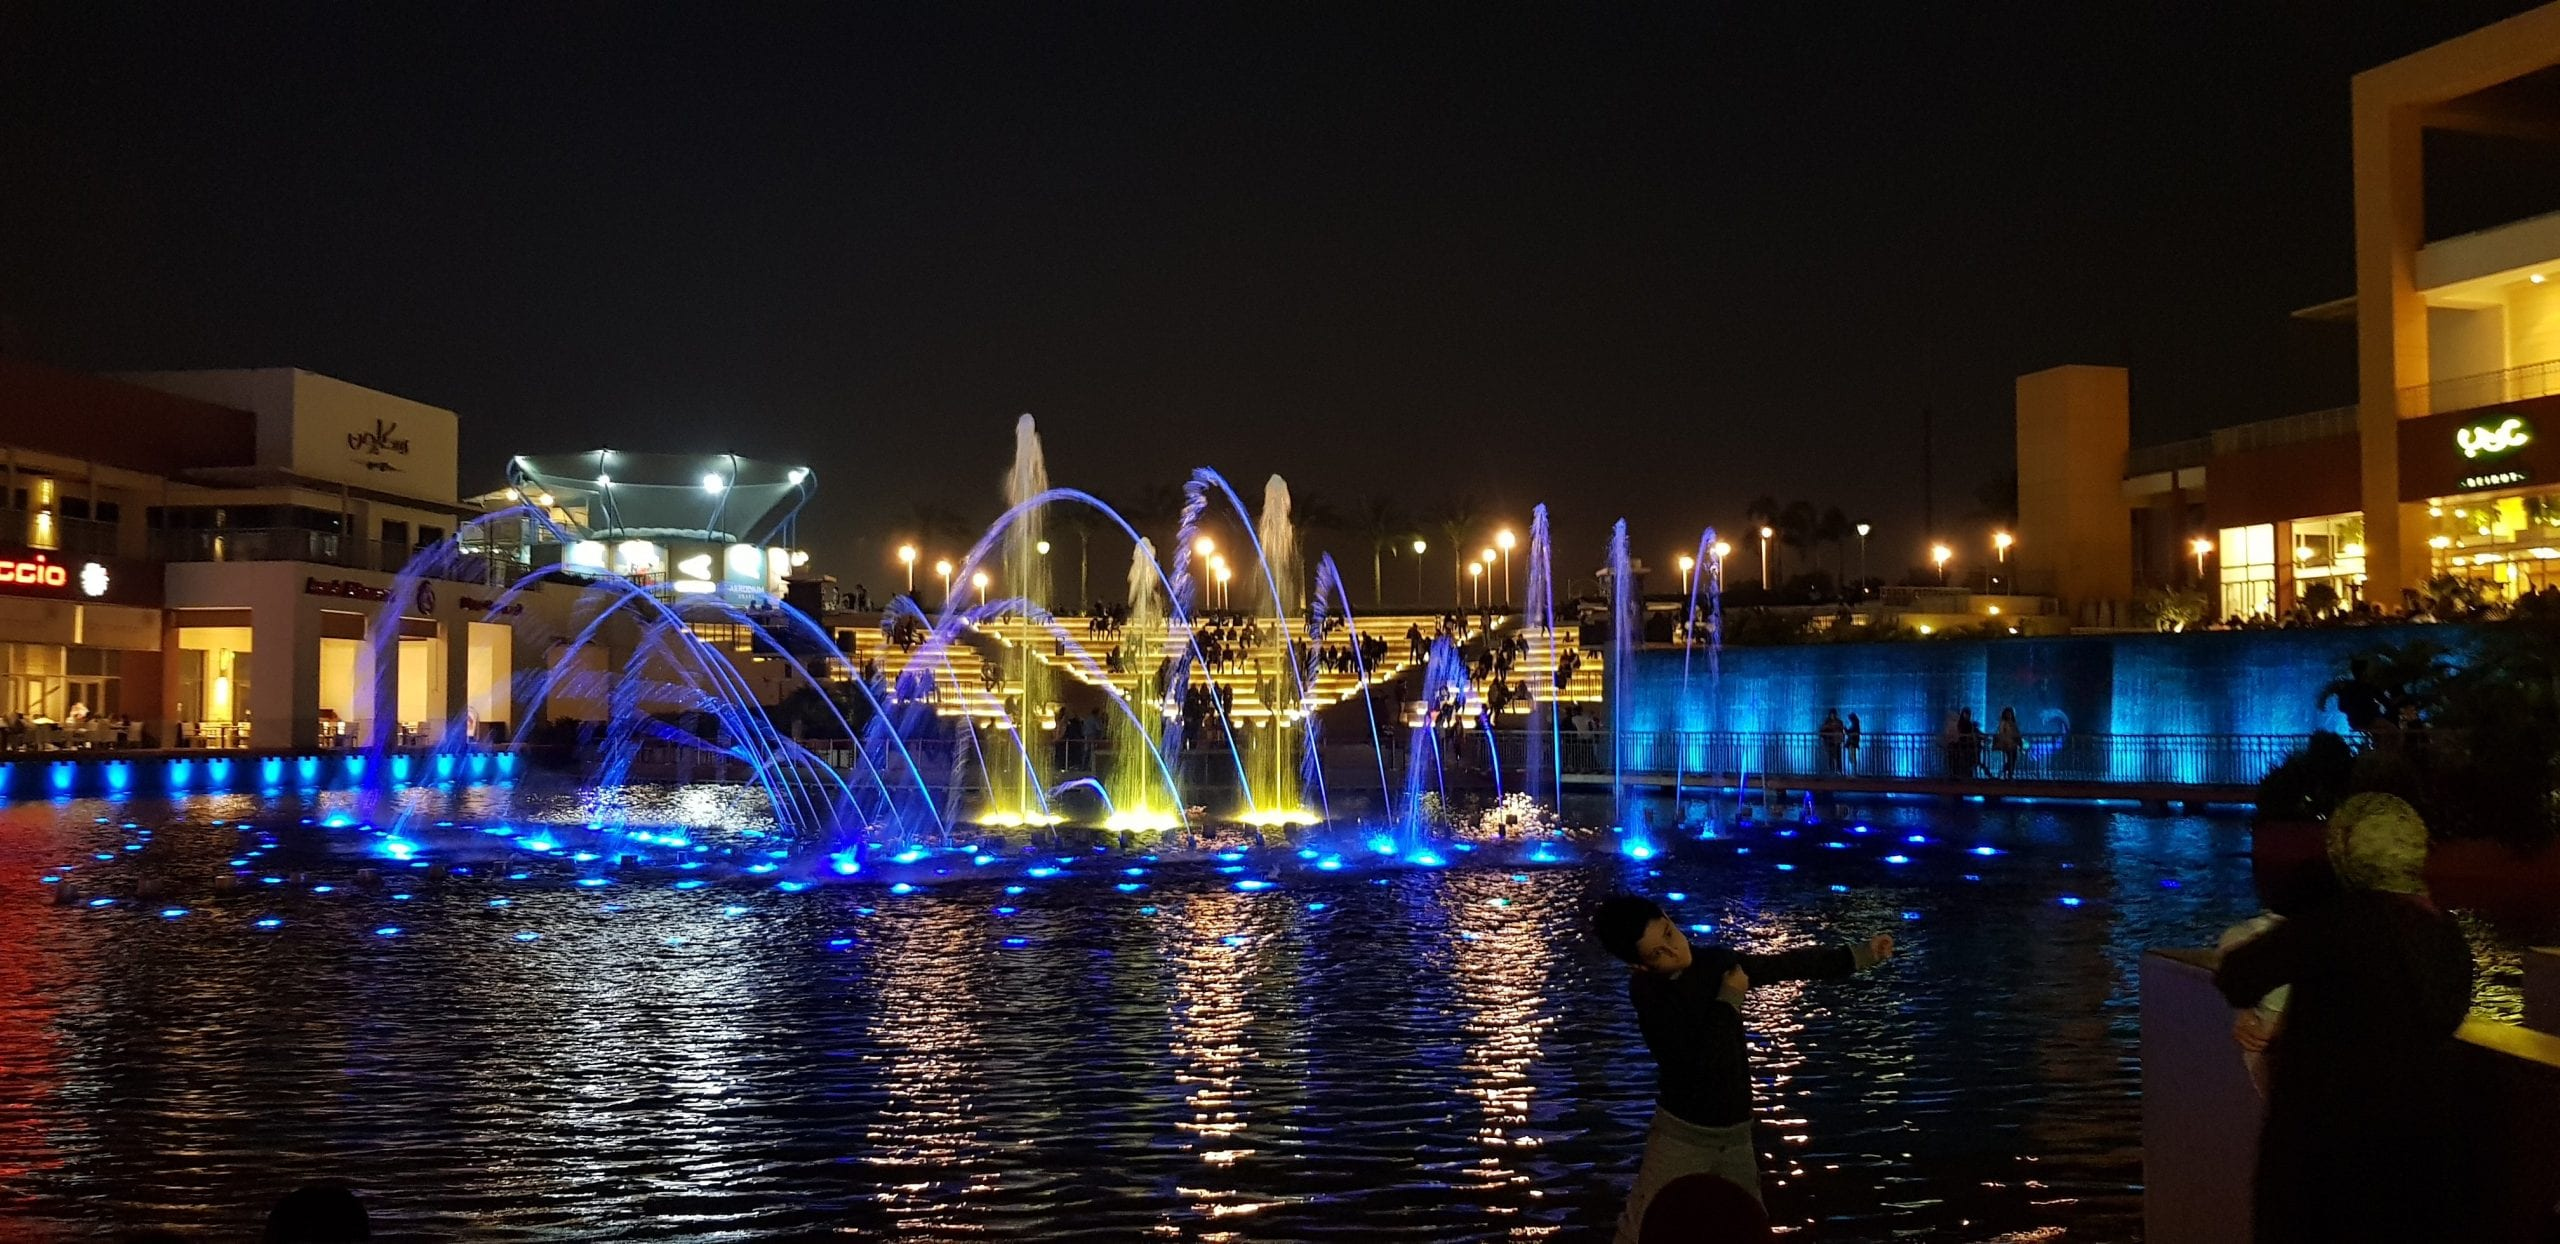 Cairo Festival City Mall Best Shopping malls in Cairo